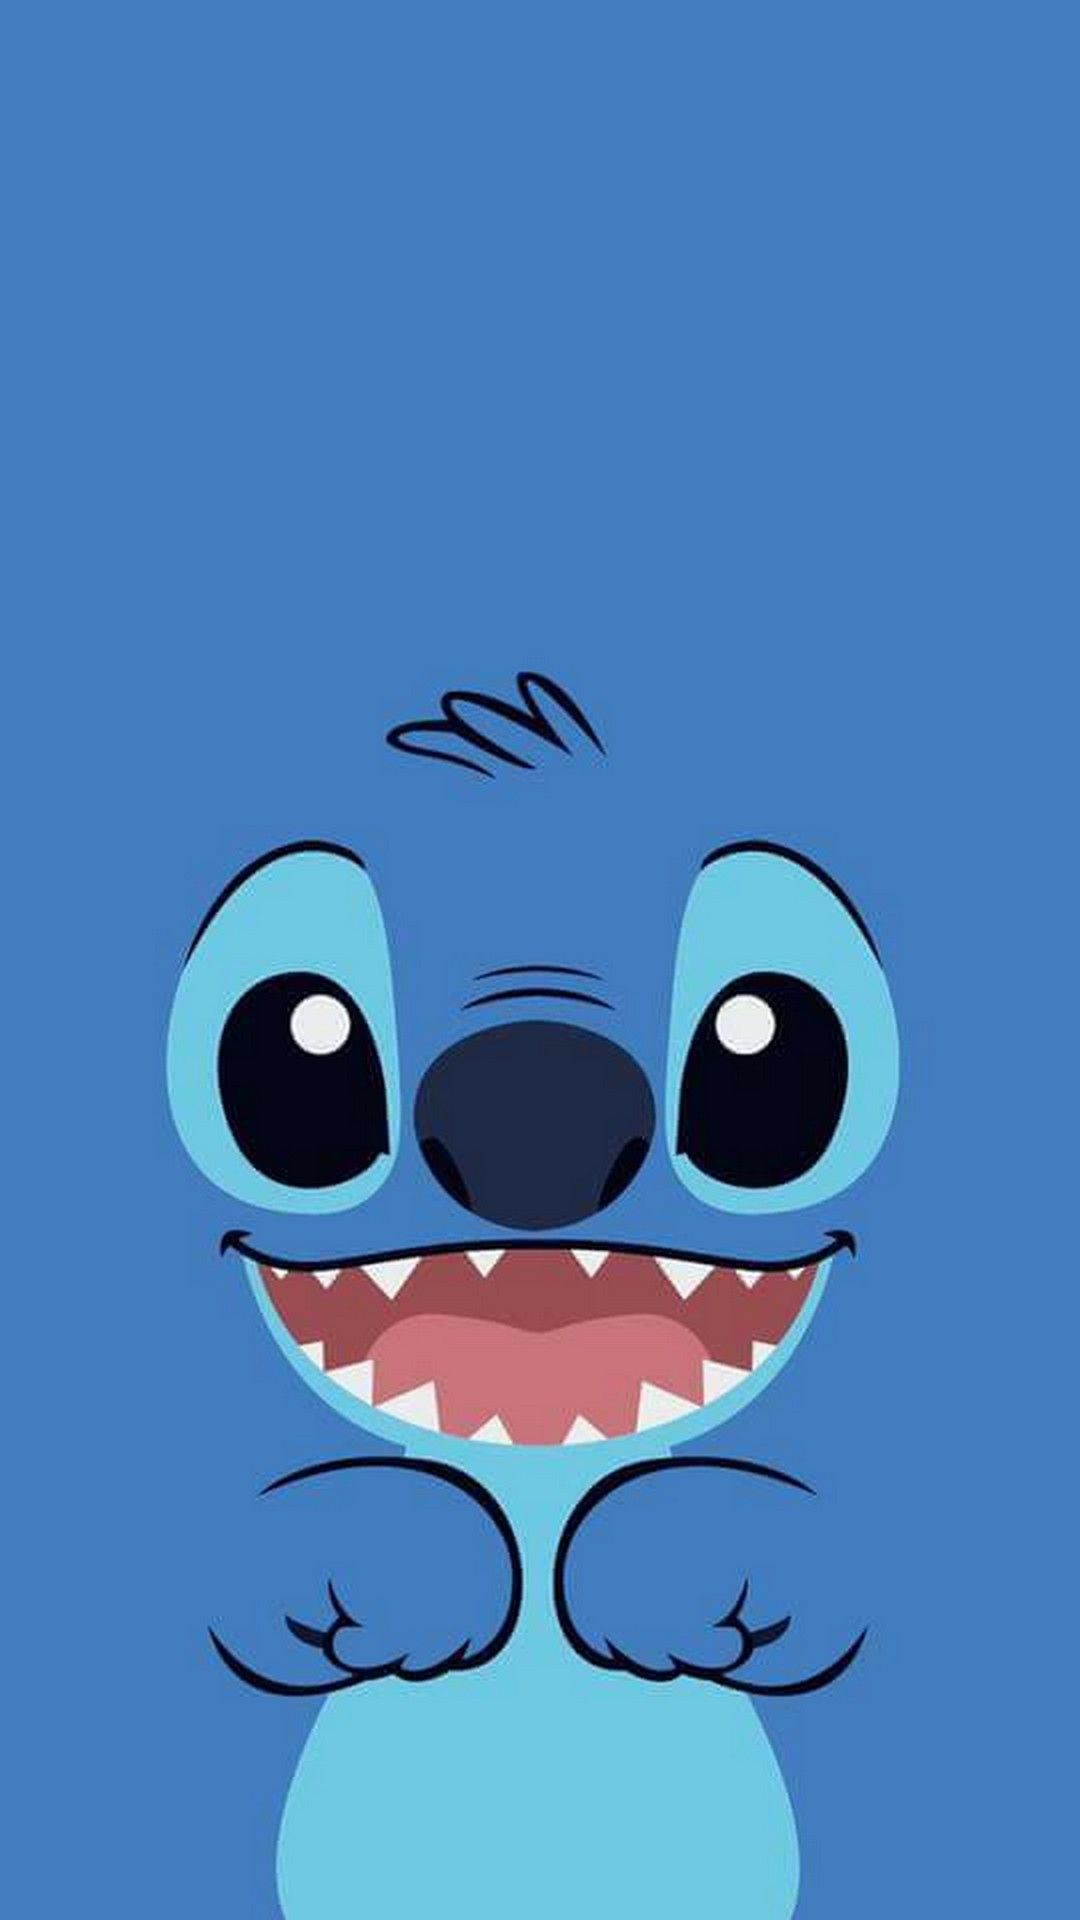 Stitch Disney Wallpaper For Mobile Android Best Hd Wallpapers